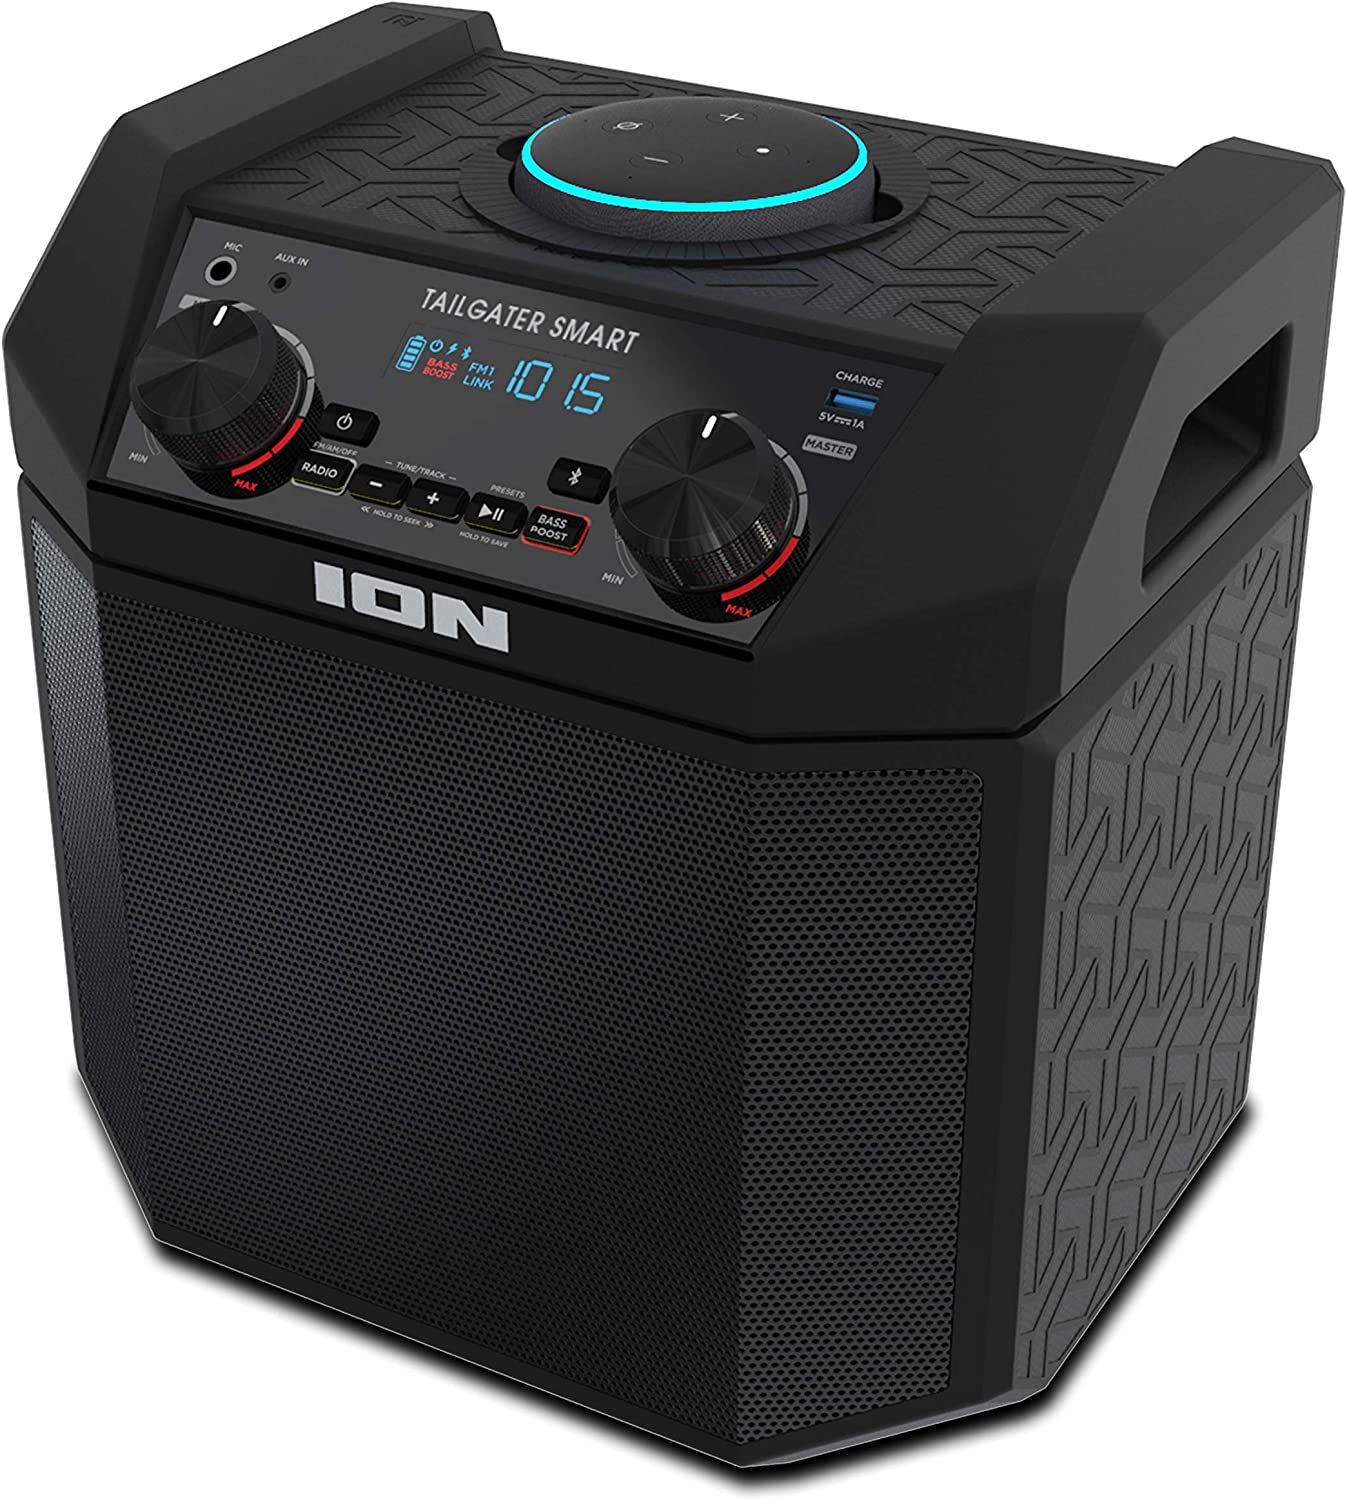 ION 8W Outdoor Echo Dot Speaker Dock/Portable Alexa Accessory With  Bluetooth Connectivity and 8 Hour Rechargeable Battery-Tailgater Smart